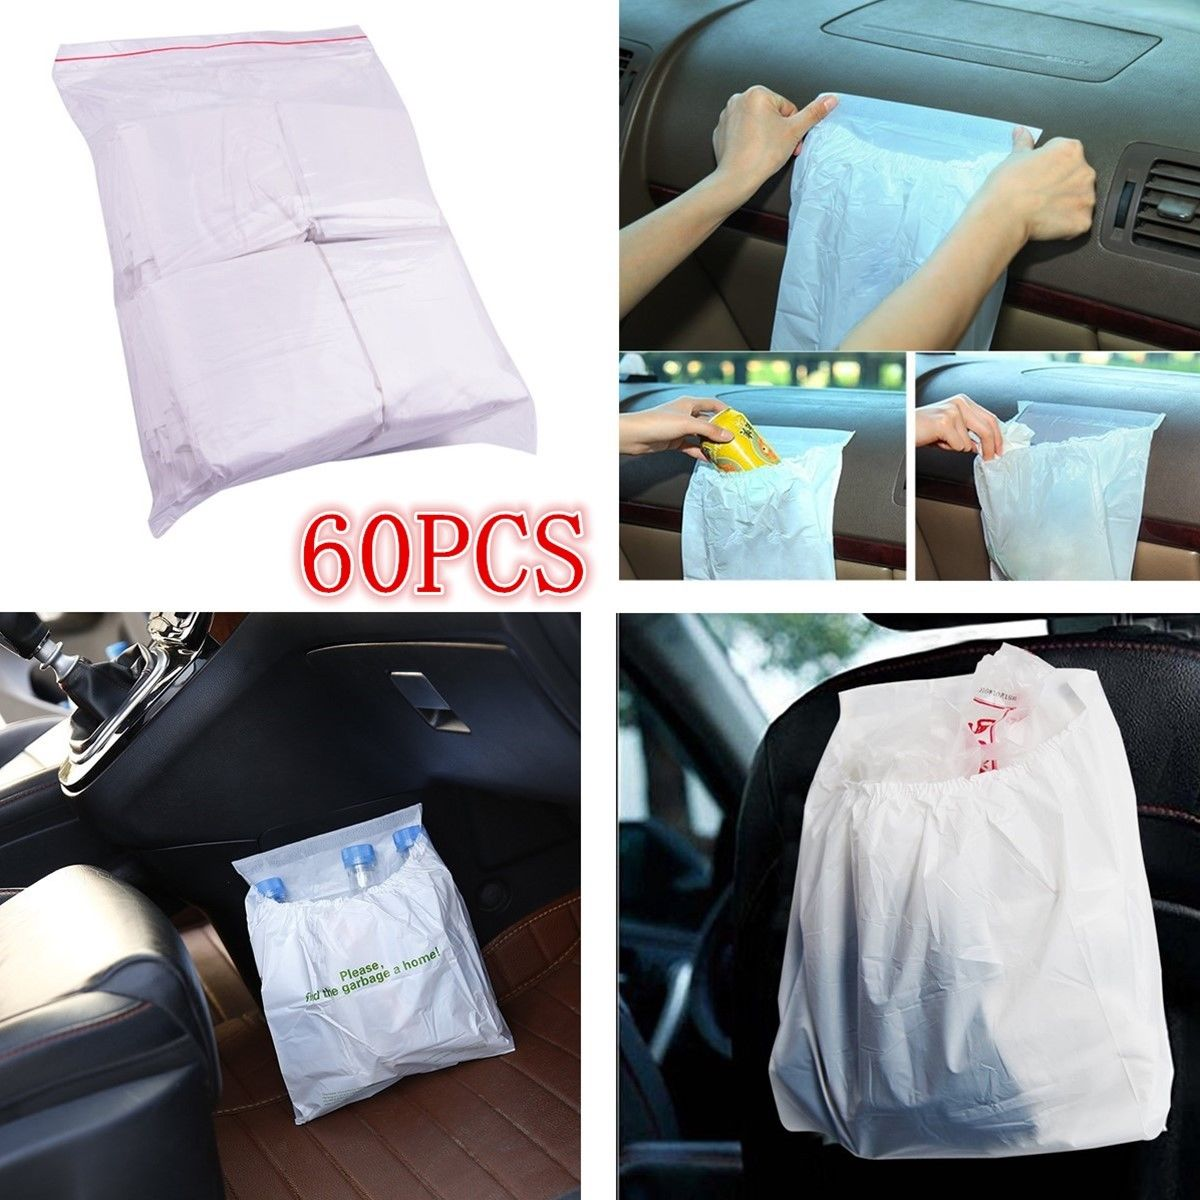 60 Pcs lot Car Garbage Bag Holder Rubbish Bag Pocket in Nets from Automobiles Motorcycles